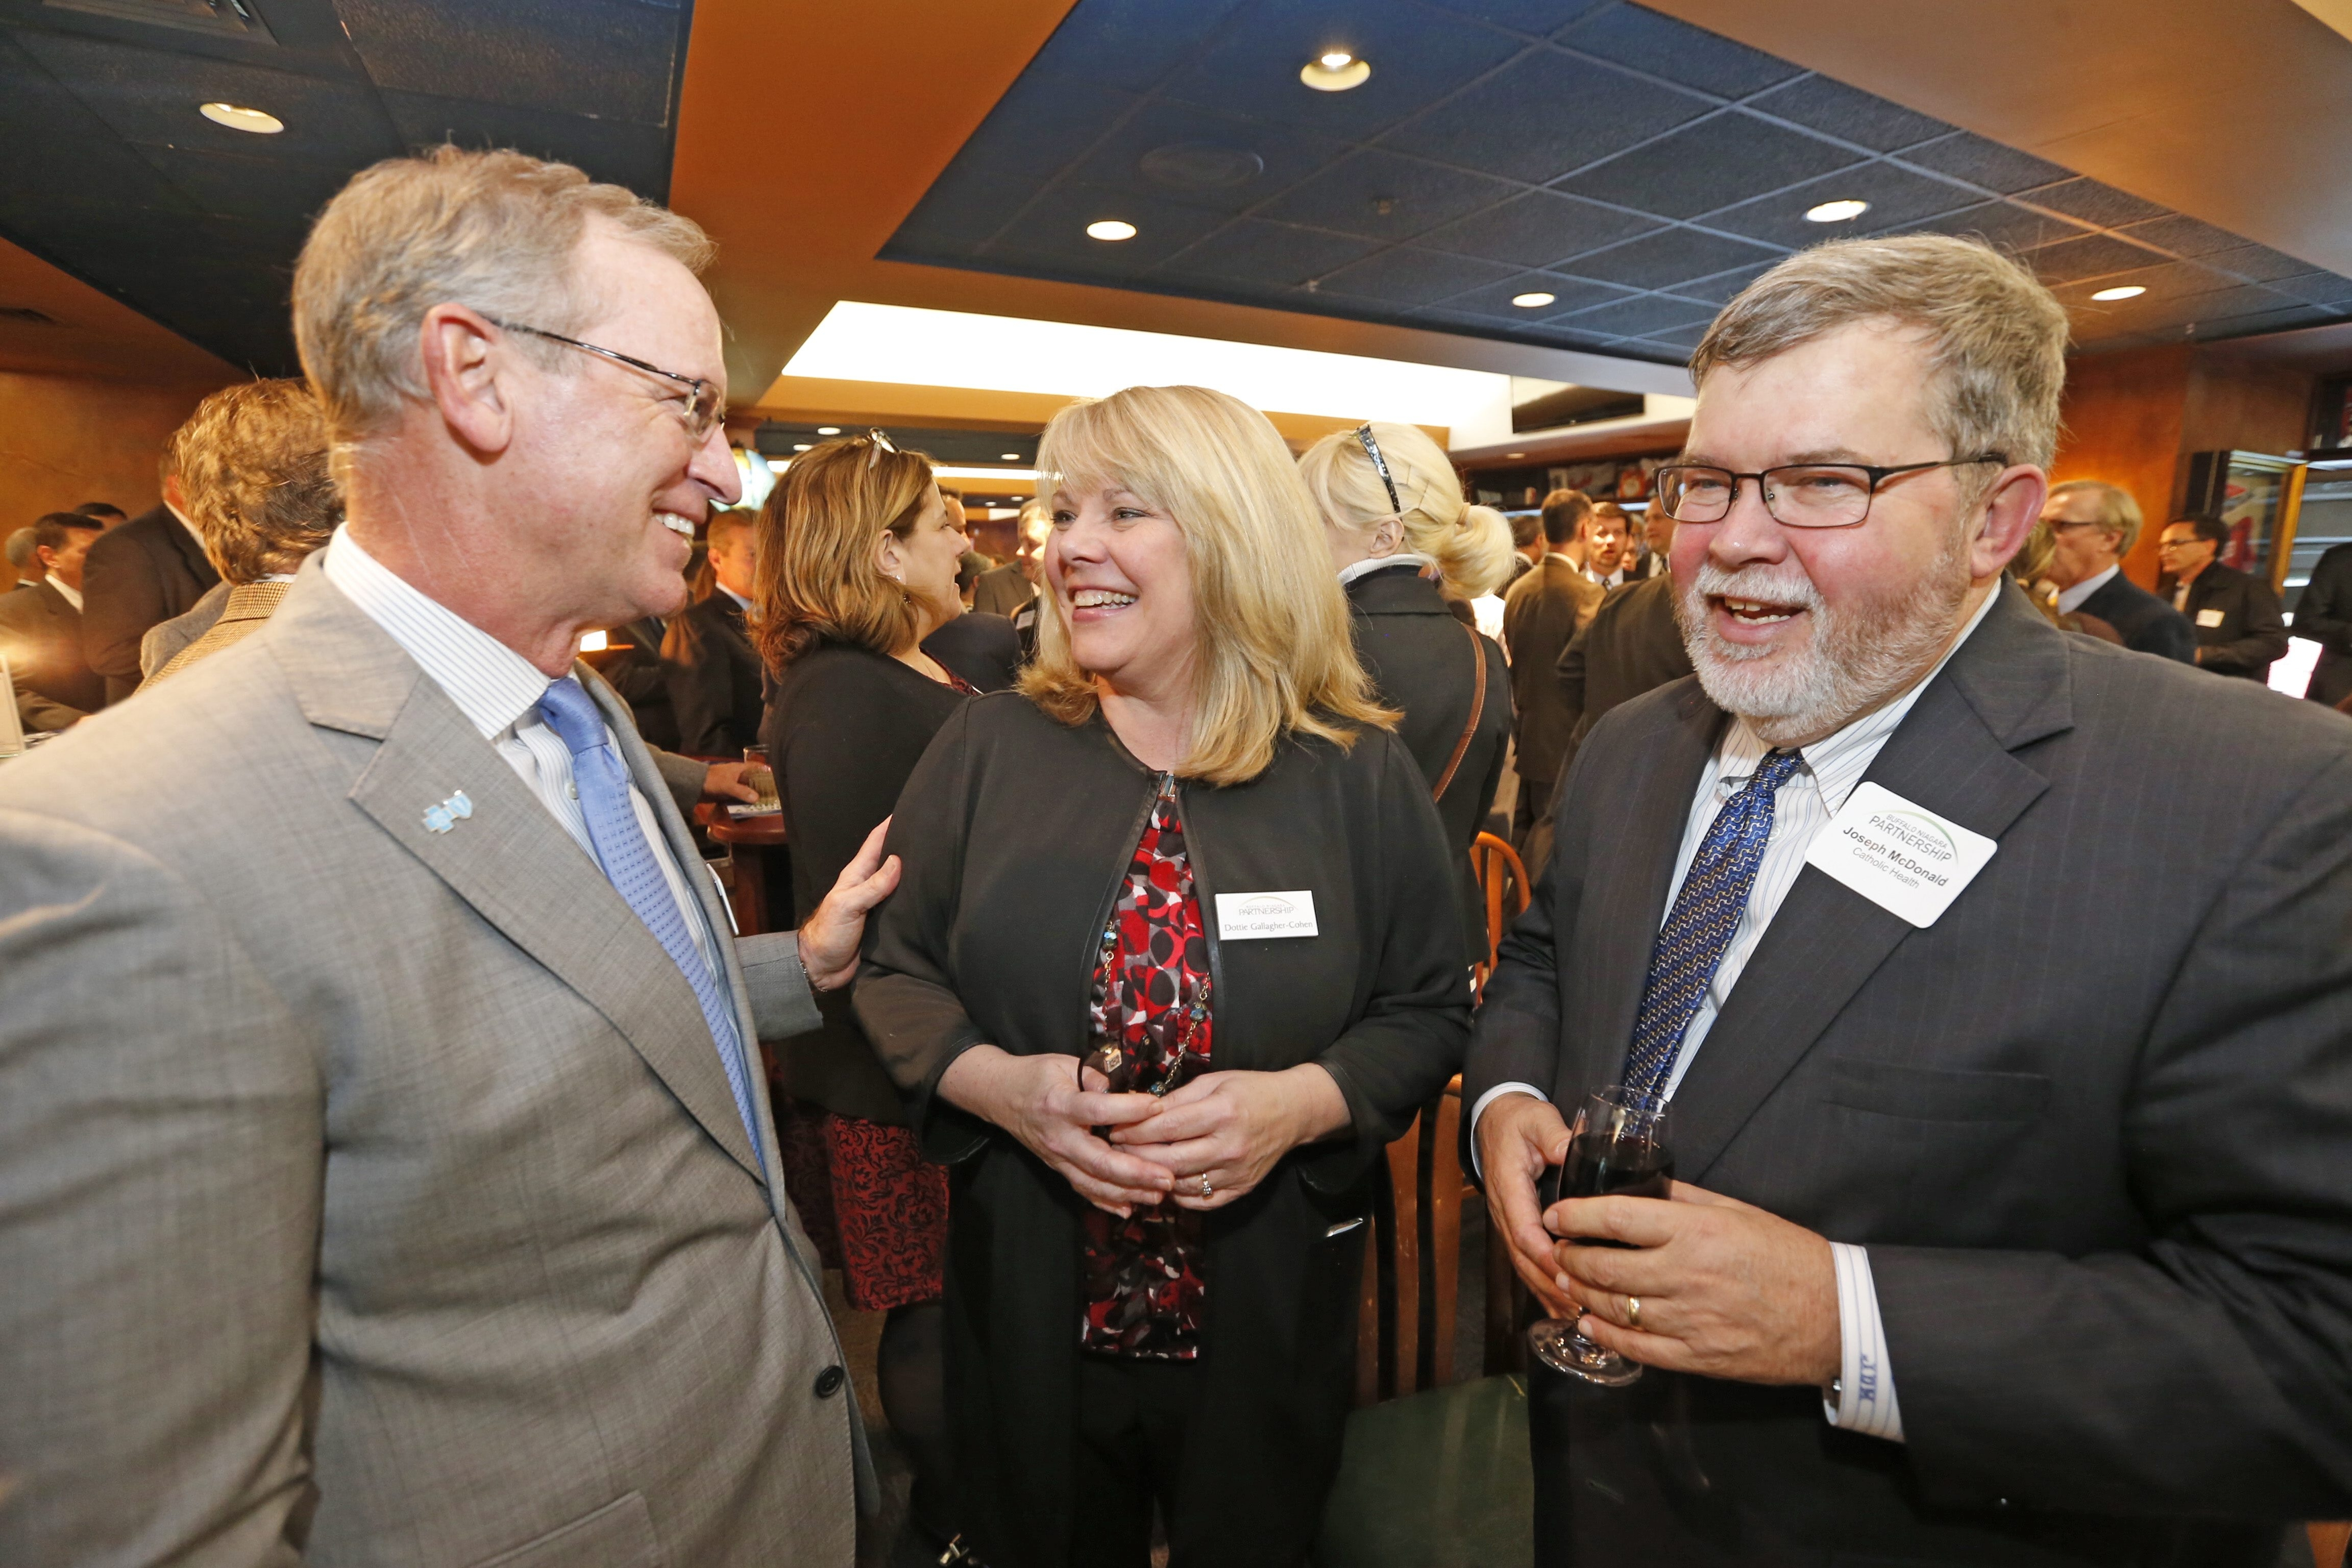 Partnership President Dottie Gallagher-Cohen chats with BlueCross BlueShield's David W. Anderson, left, and Catholic Health's Joseph D. McDonald at event.